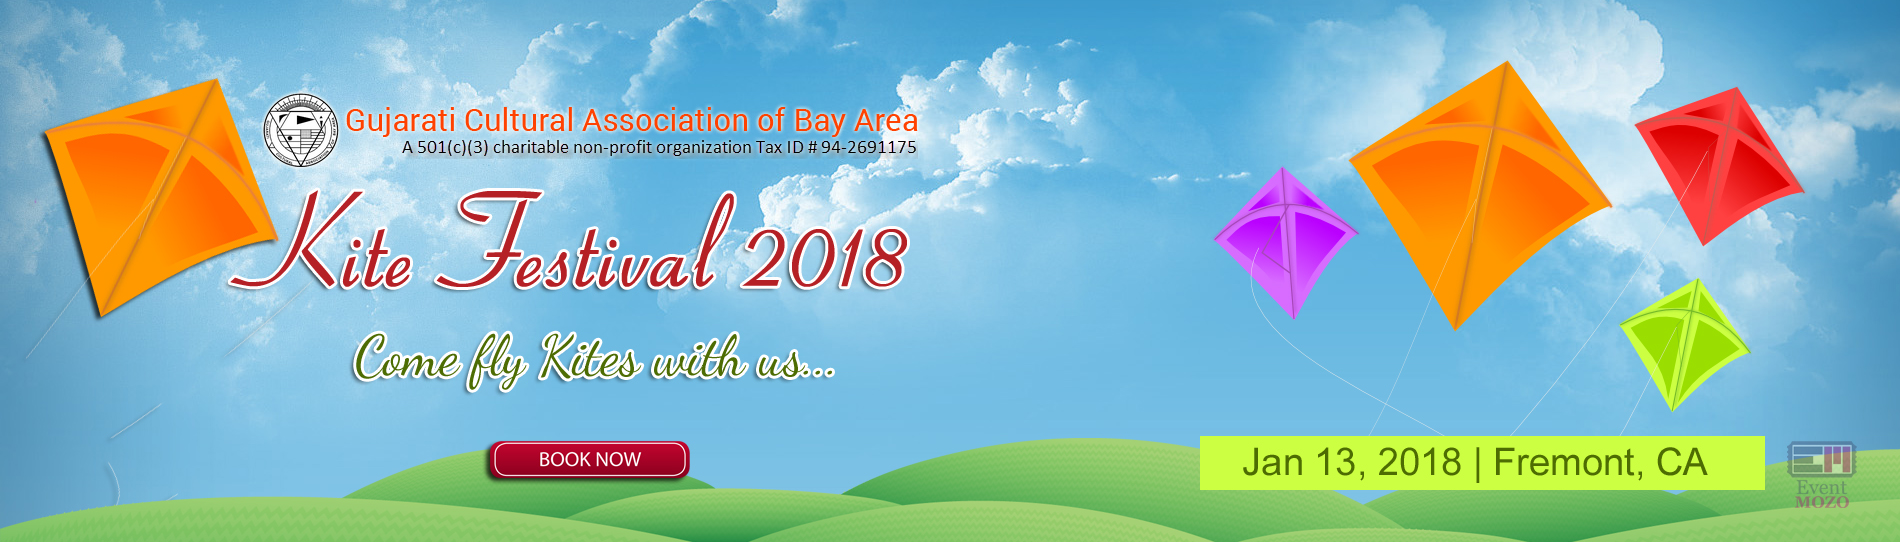 EventMozo GCA Bay Area Kite Festival 2018